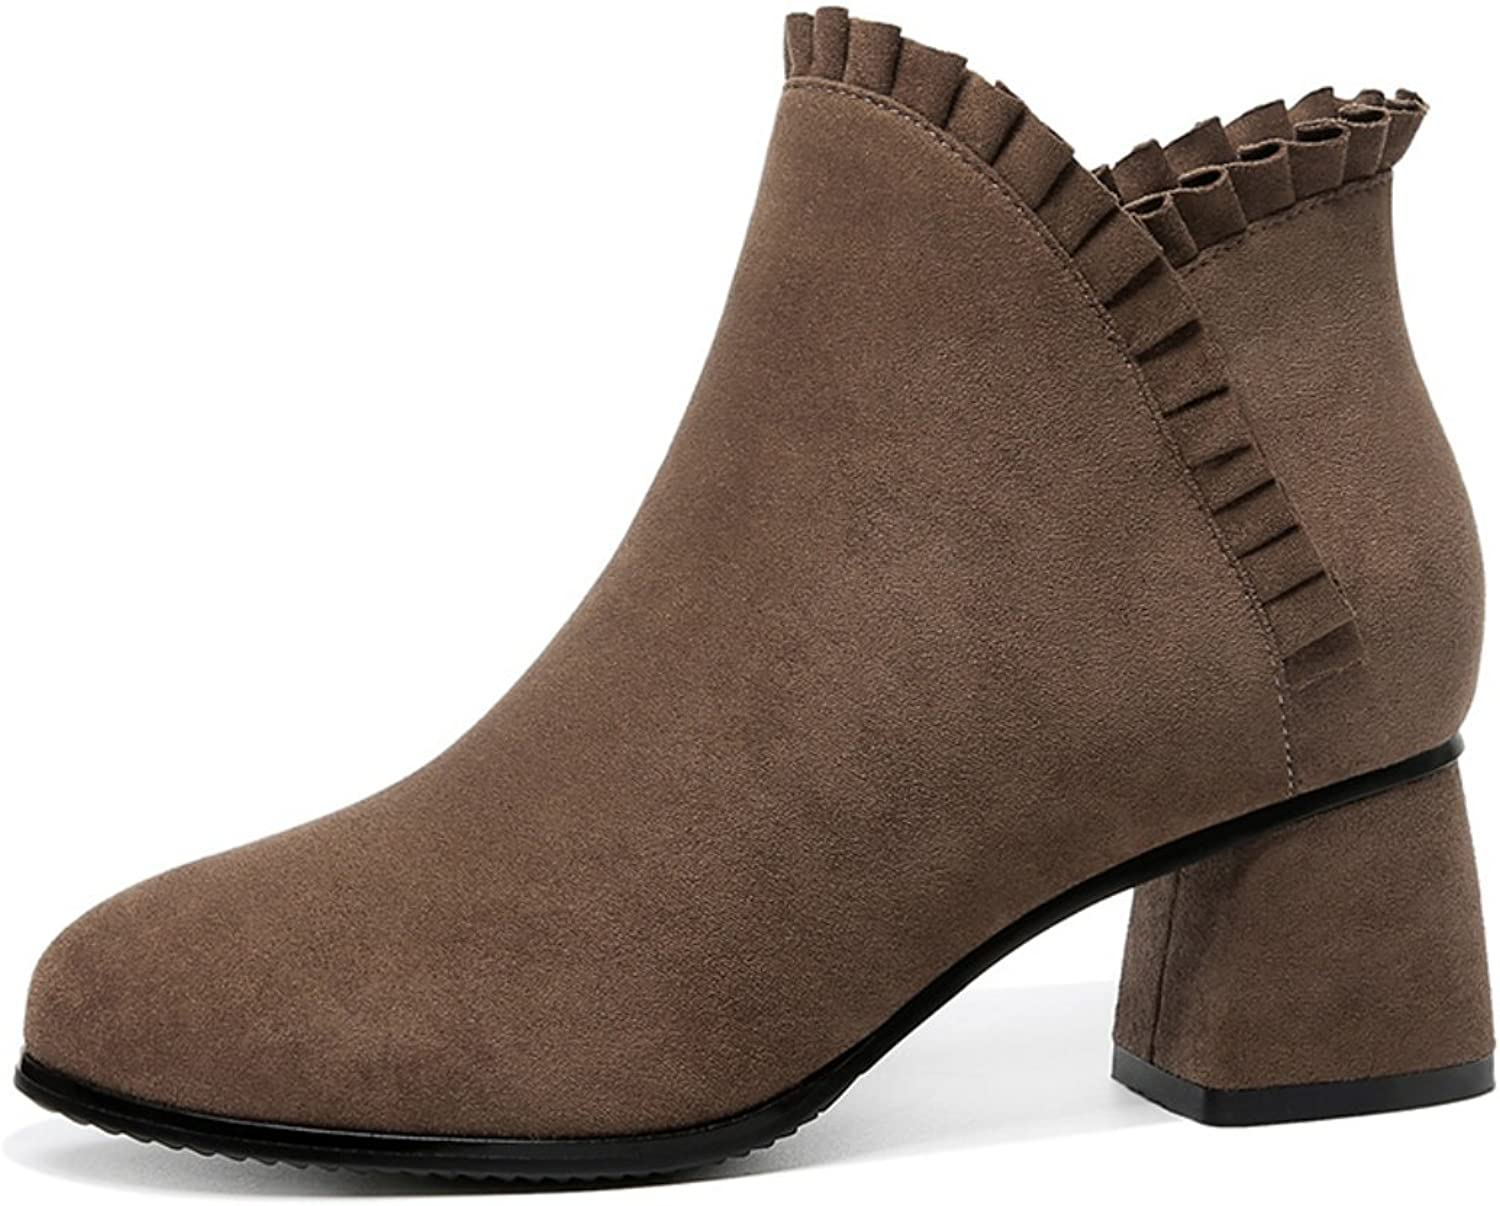 Lusam feeling Women's Classic Ankle Boots Fuax Furs Linning Side Zipper High Square Heel Bootie